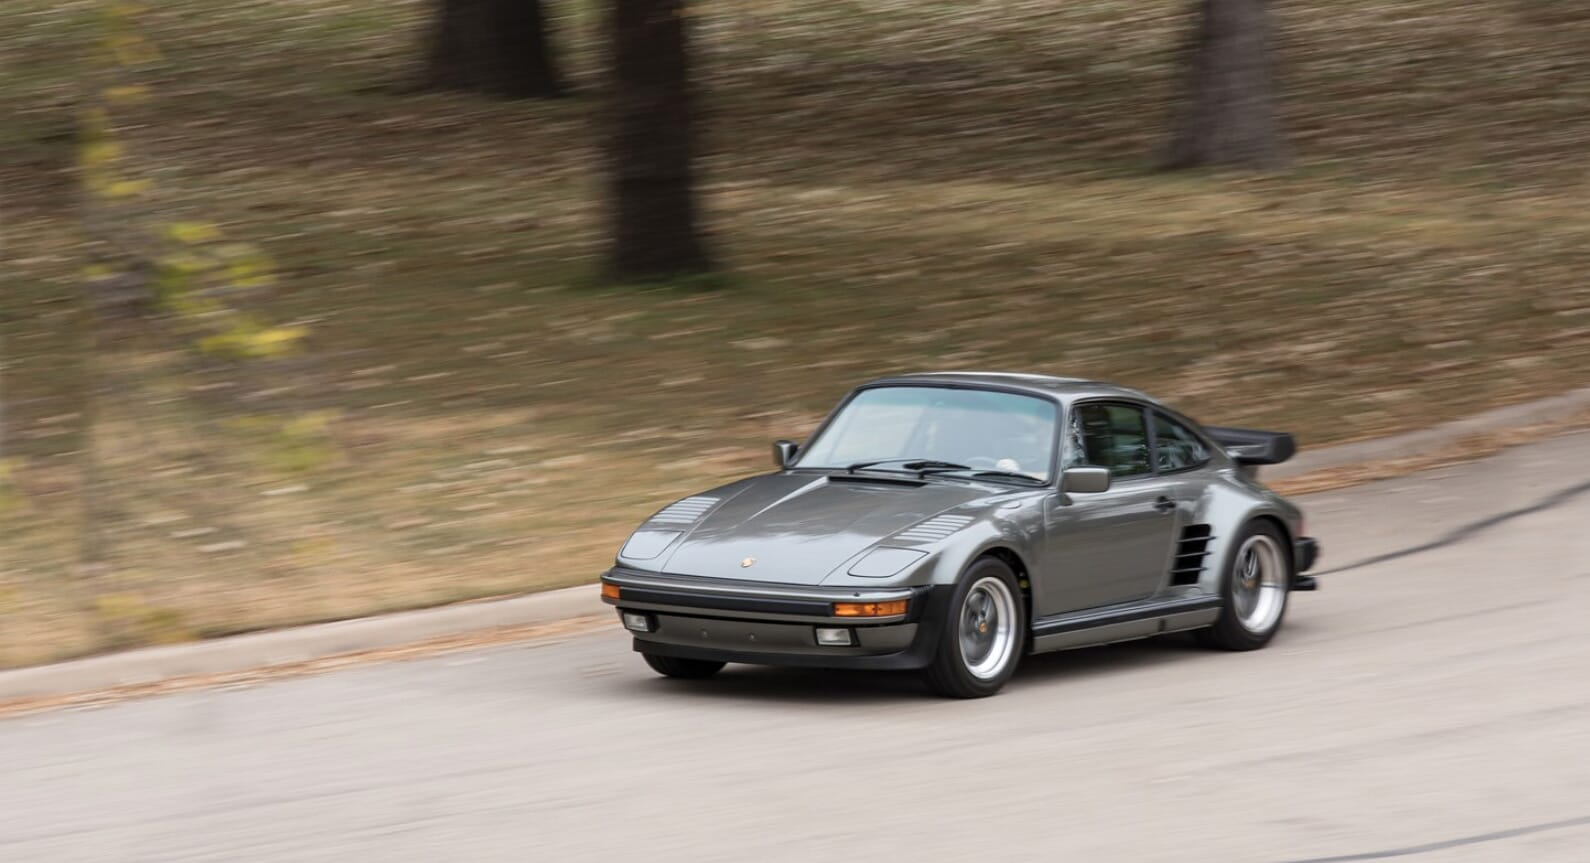 This Porsche 'Flat Nose' Turbo Could Sell For Over $200,000